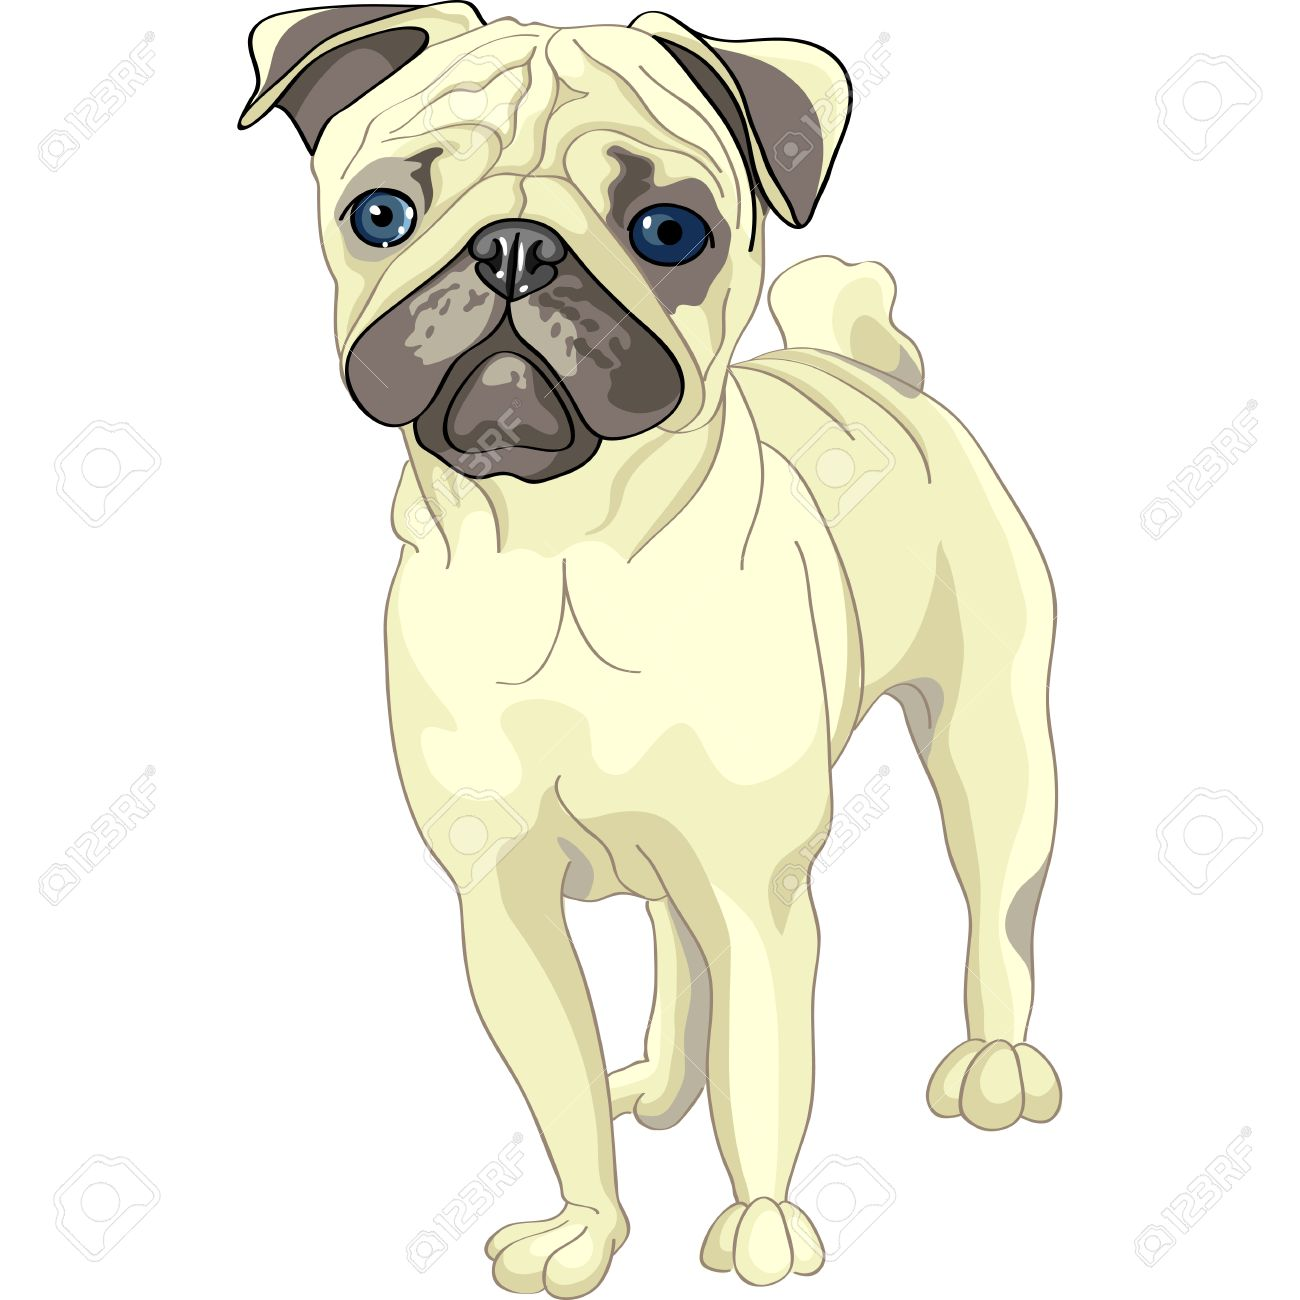 color sketch of the dog fawn pug breed stock vector 11967154